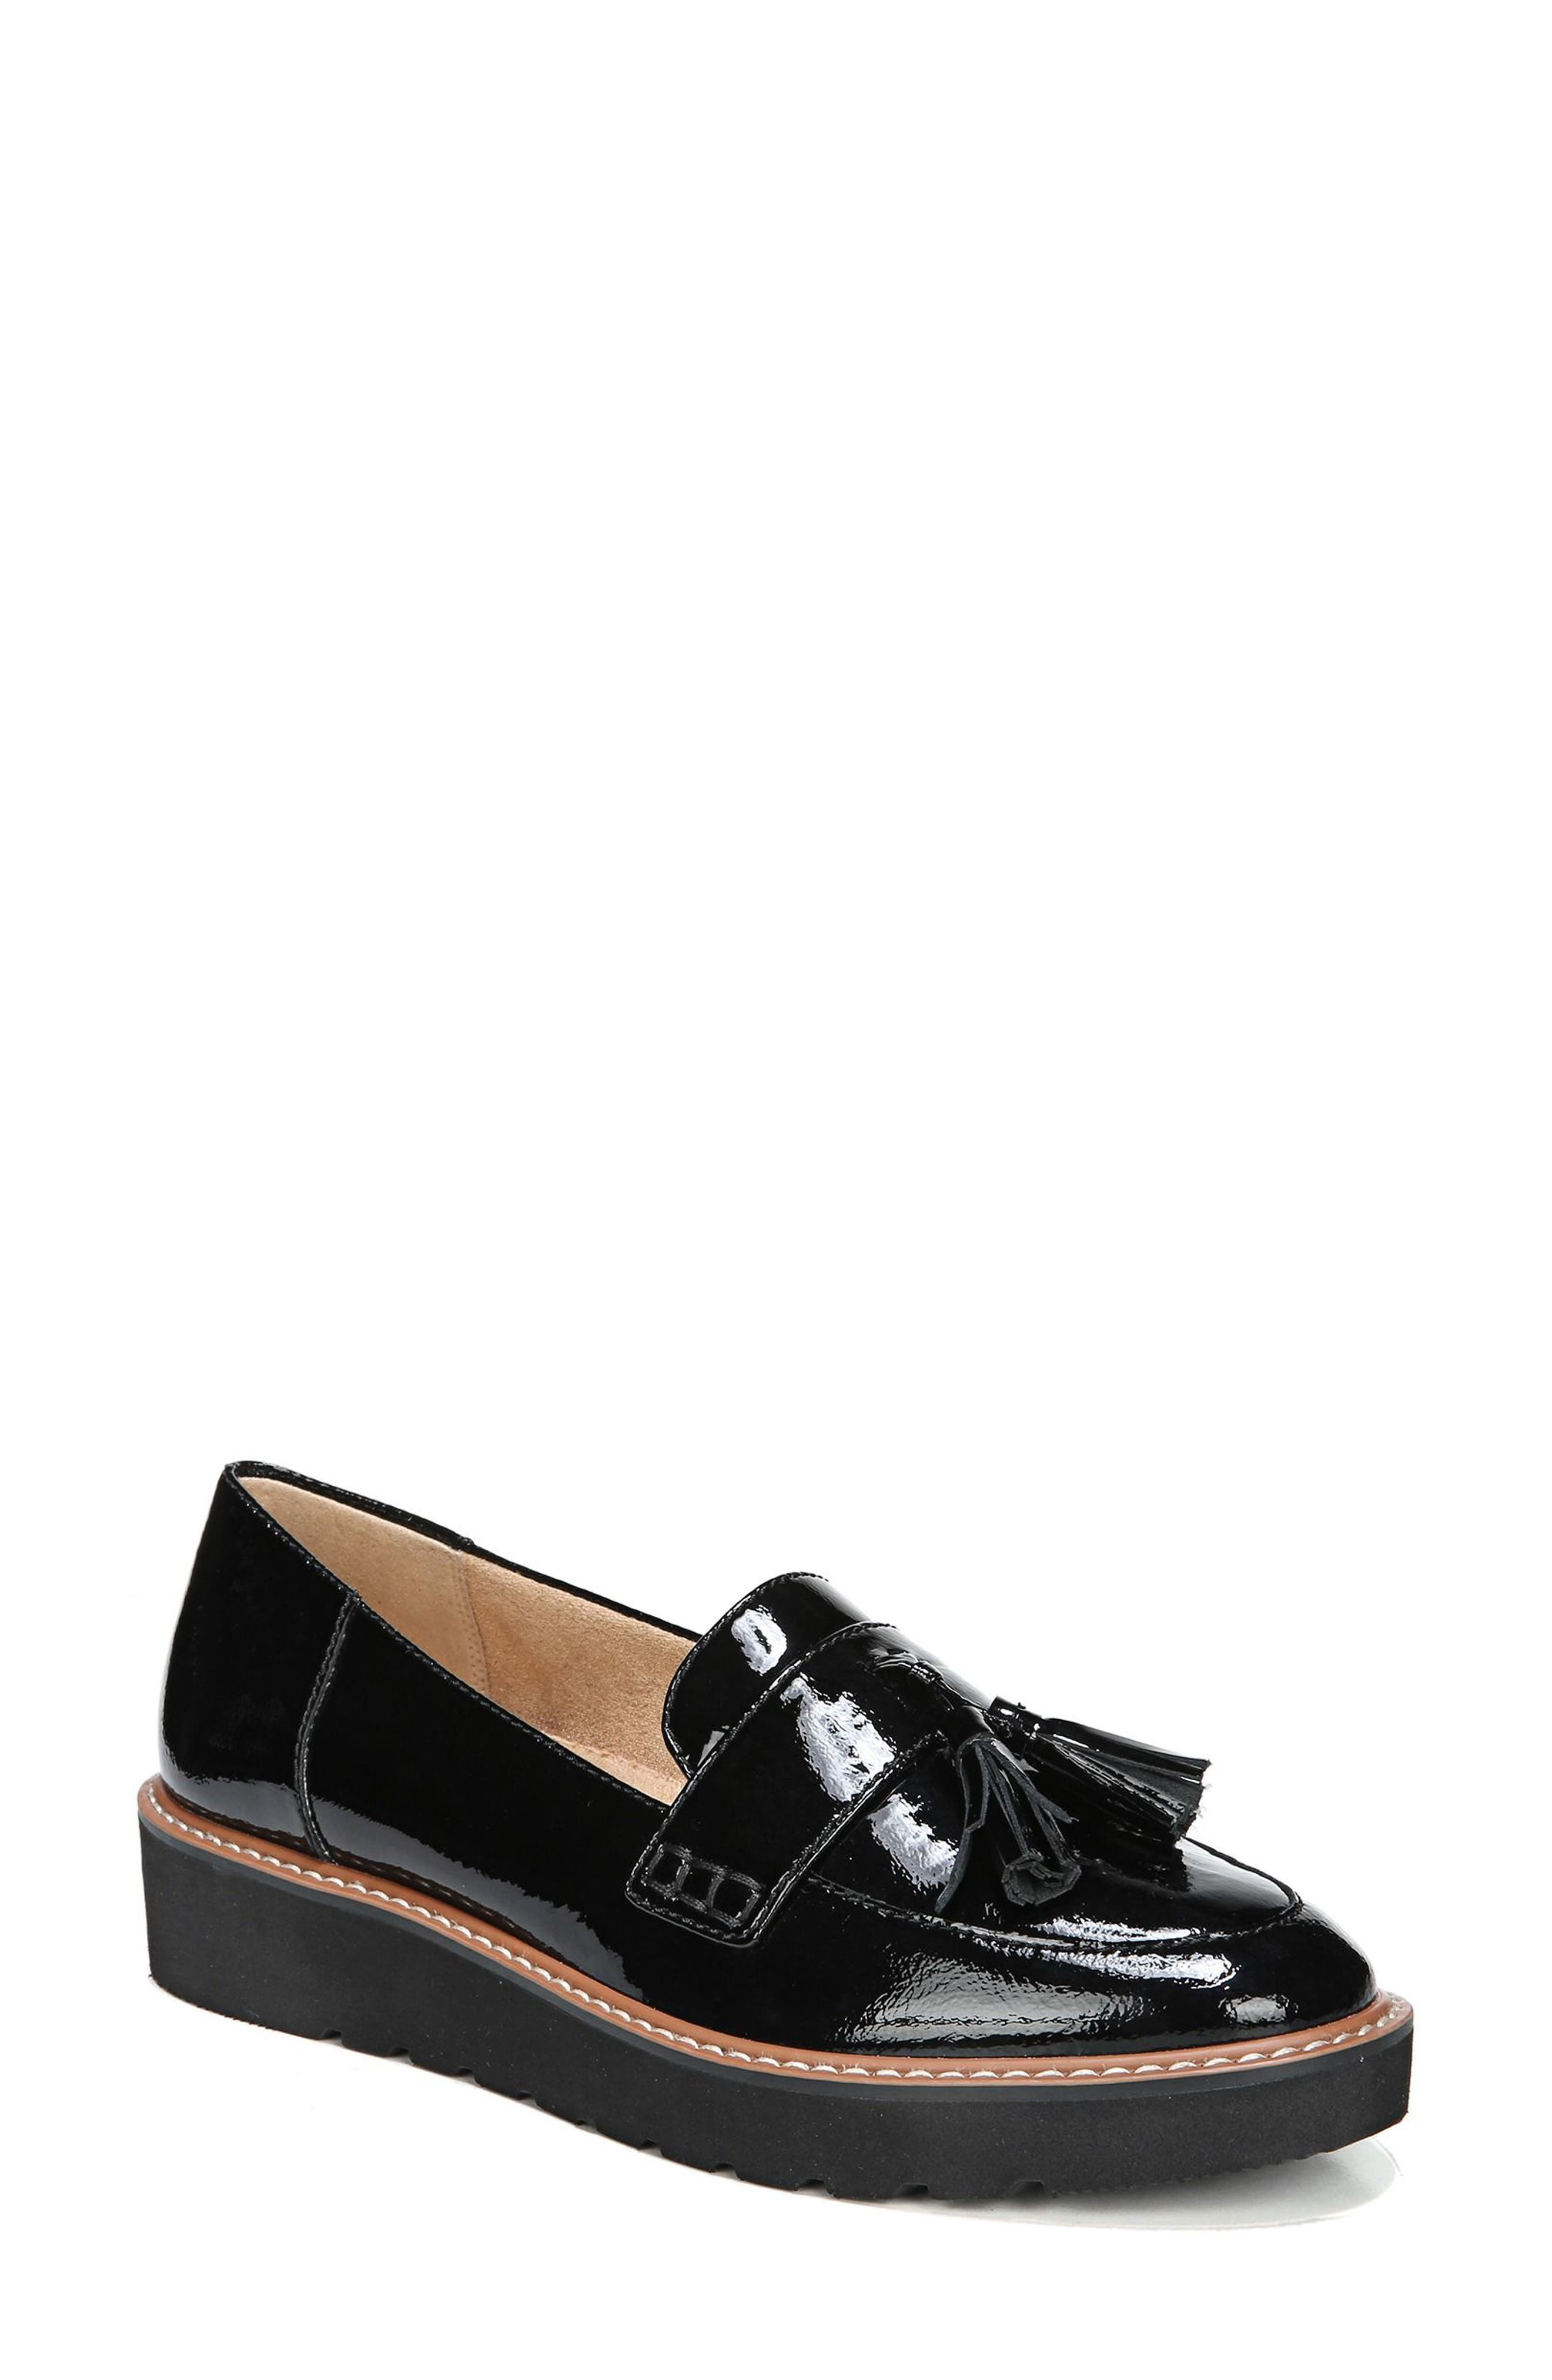 NATURALIZER August Loafer, Main, color, 002